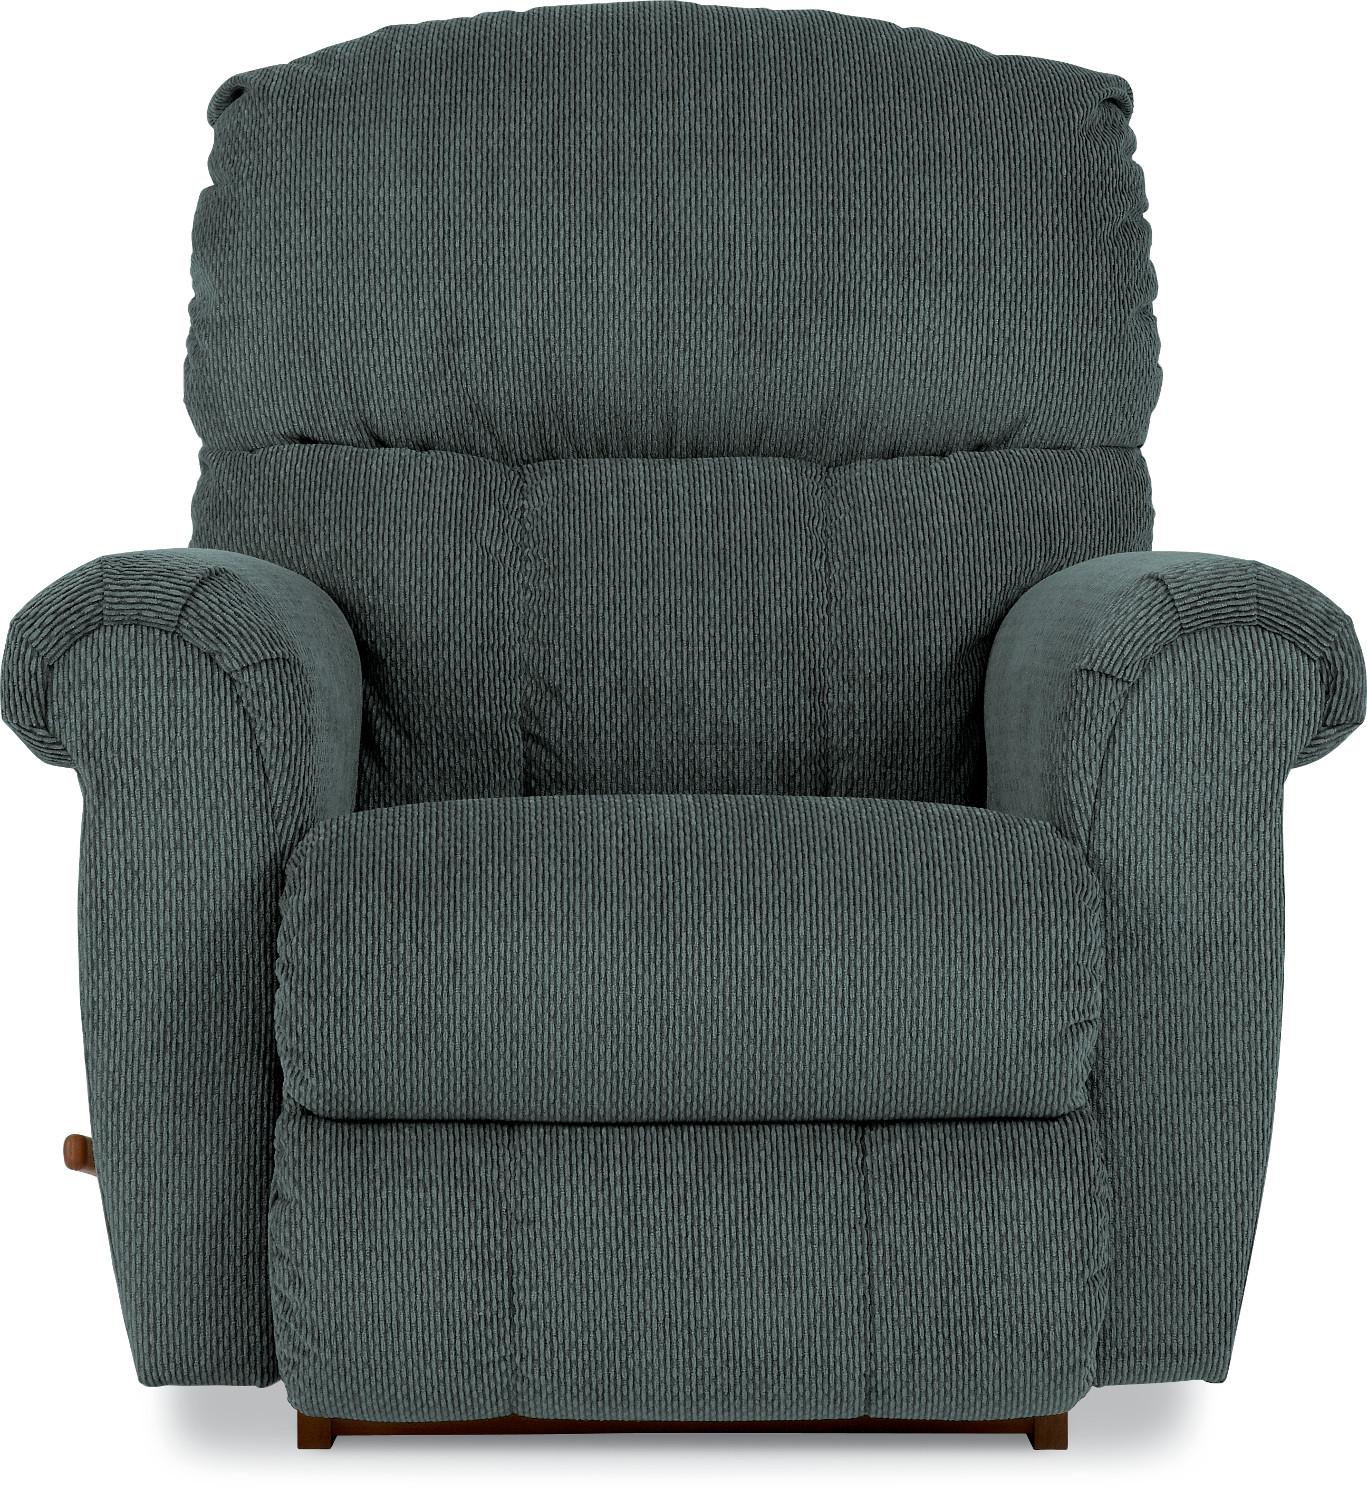 Briggs RECLINA-ROCKER® by La-Z-Boy at Jordan's Home Furnishings